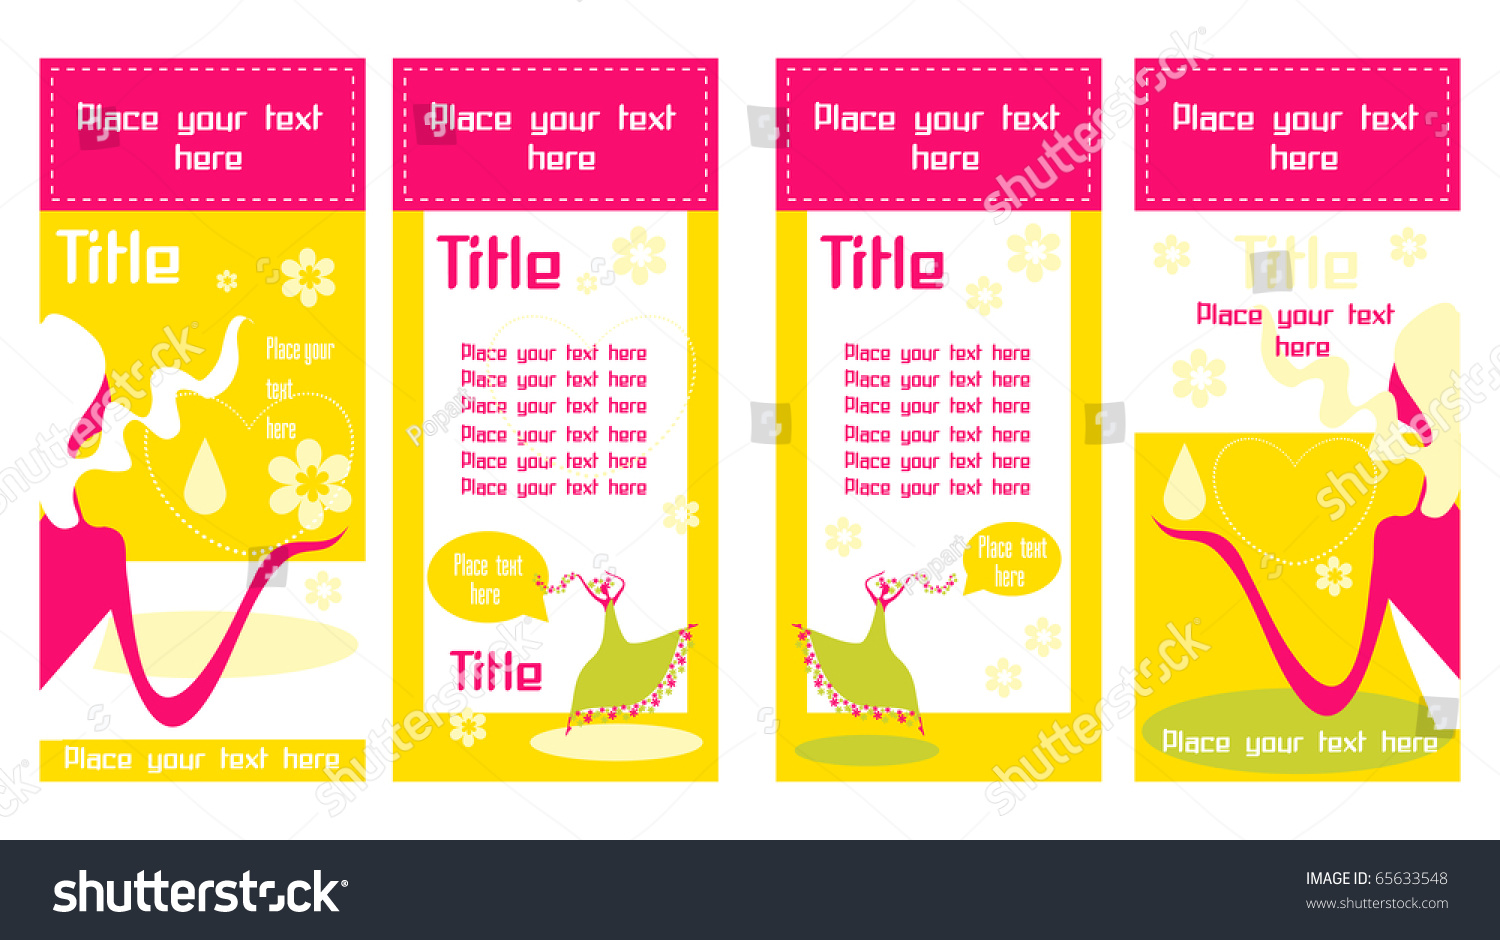 Banner Business Cards Beautiful Young Women Stock Vector 65633548 ...